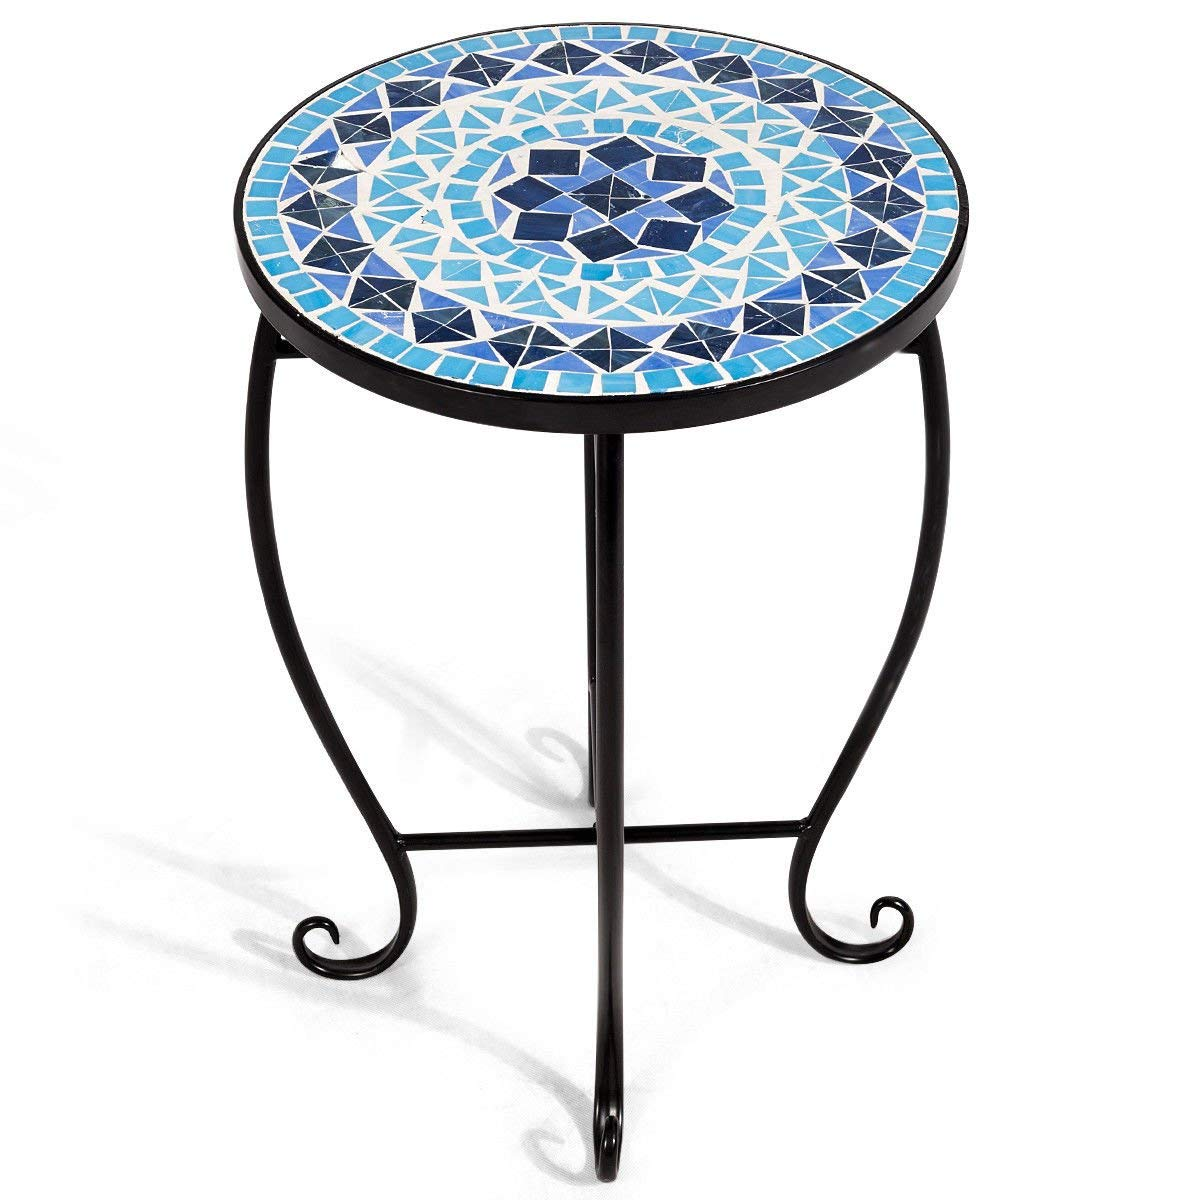 accent table plant stand cobalt blue color scheme garden steel stained glass outdoor indoor tall side with drawers kidney bean coffee retro modern linens small nesting tables